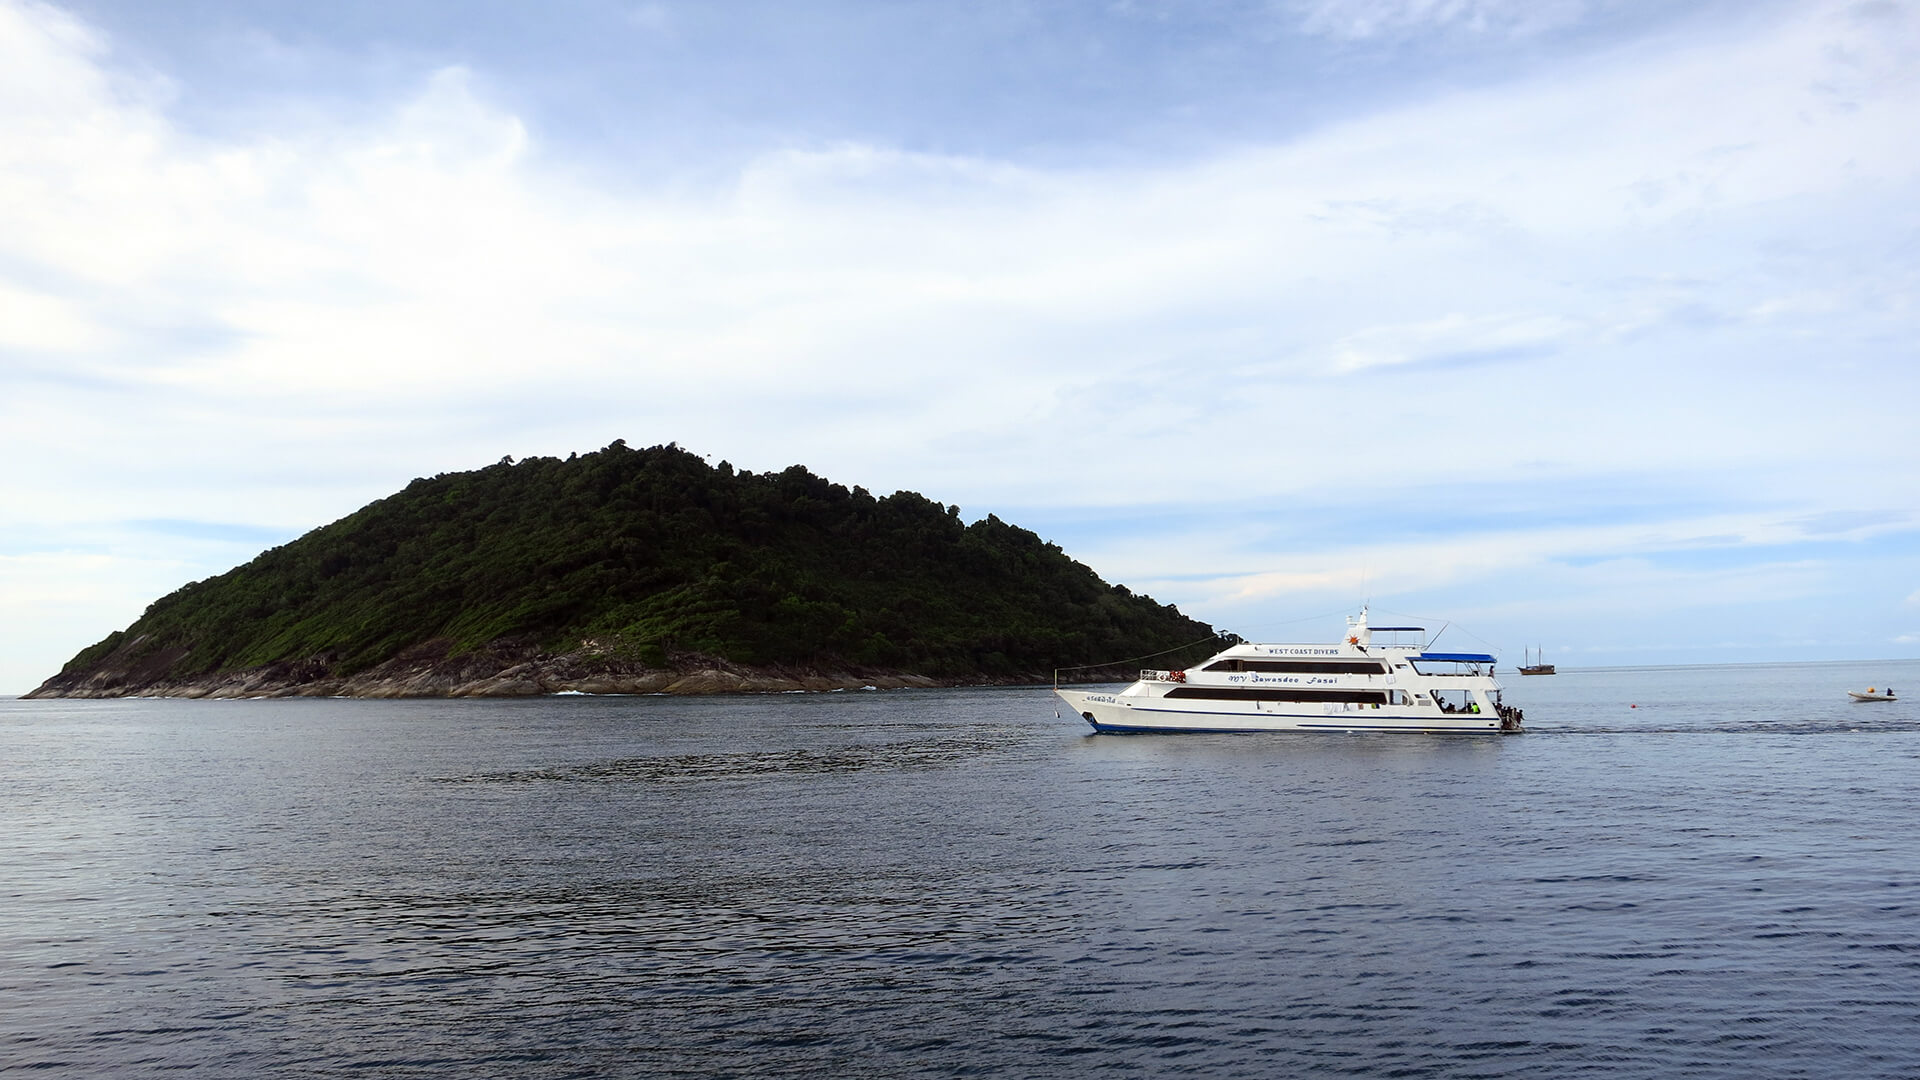 Koh Tachai Pinnacle